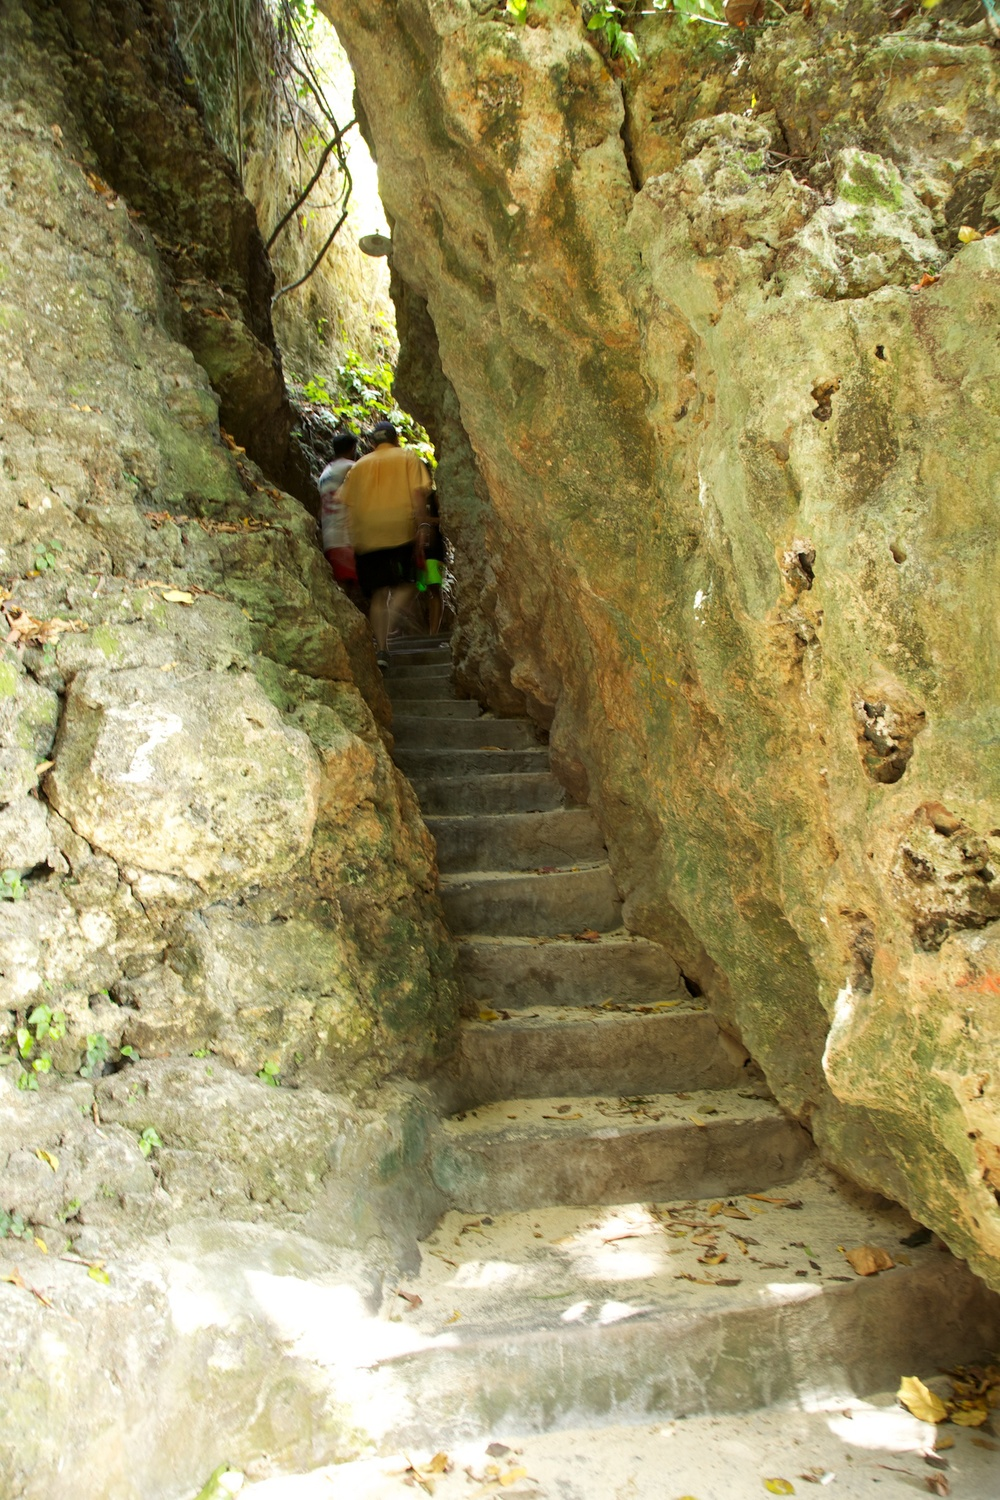 The stairs down to the beach at times were very narrow, and cut right through the rock.